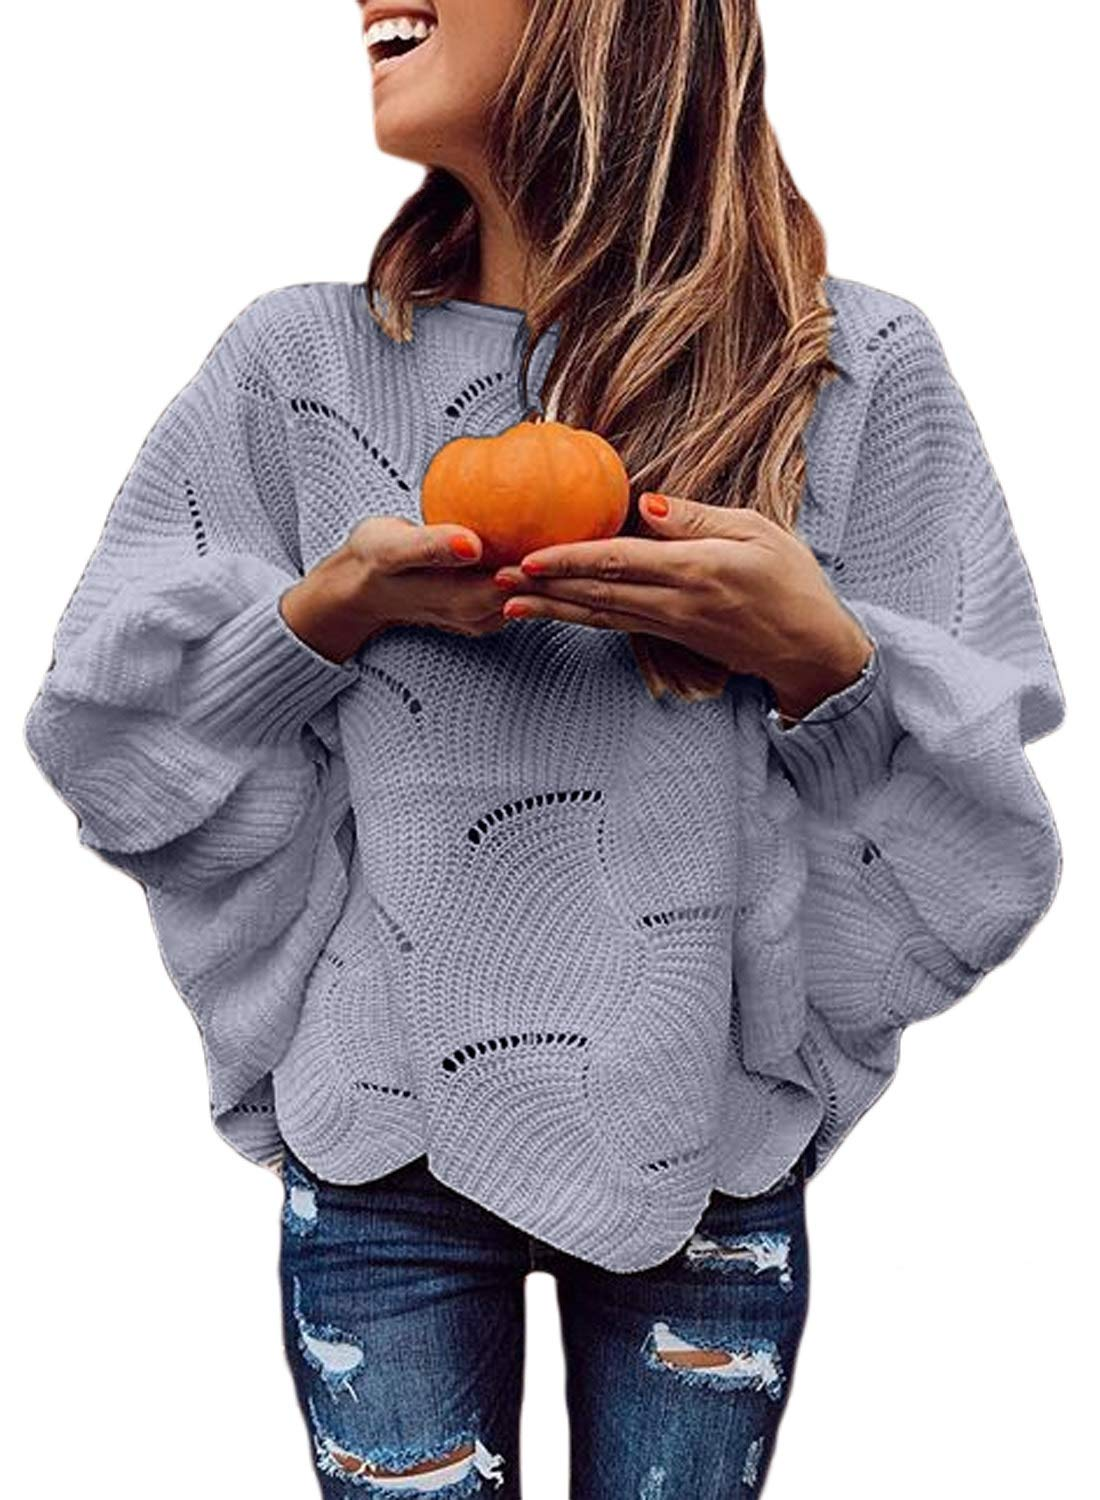 Dearlovers Womens Batwing Long Sleeve Boat Neck Knit Oversized Casual Pullover Sweaters Top